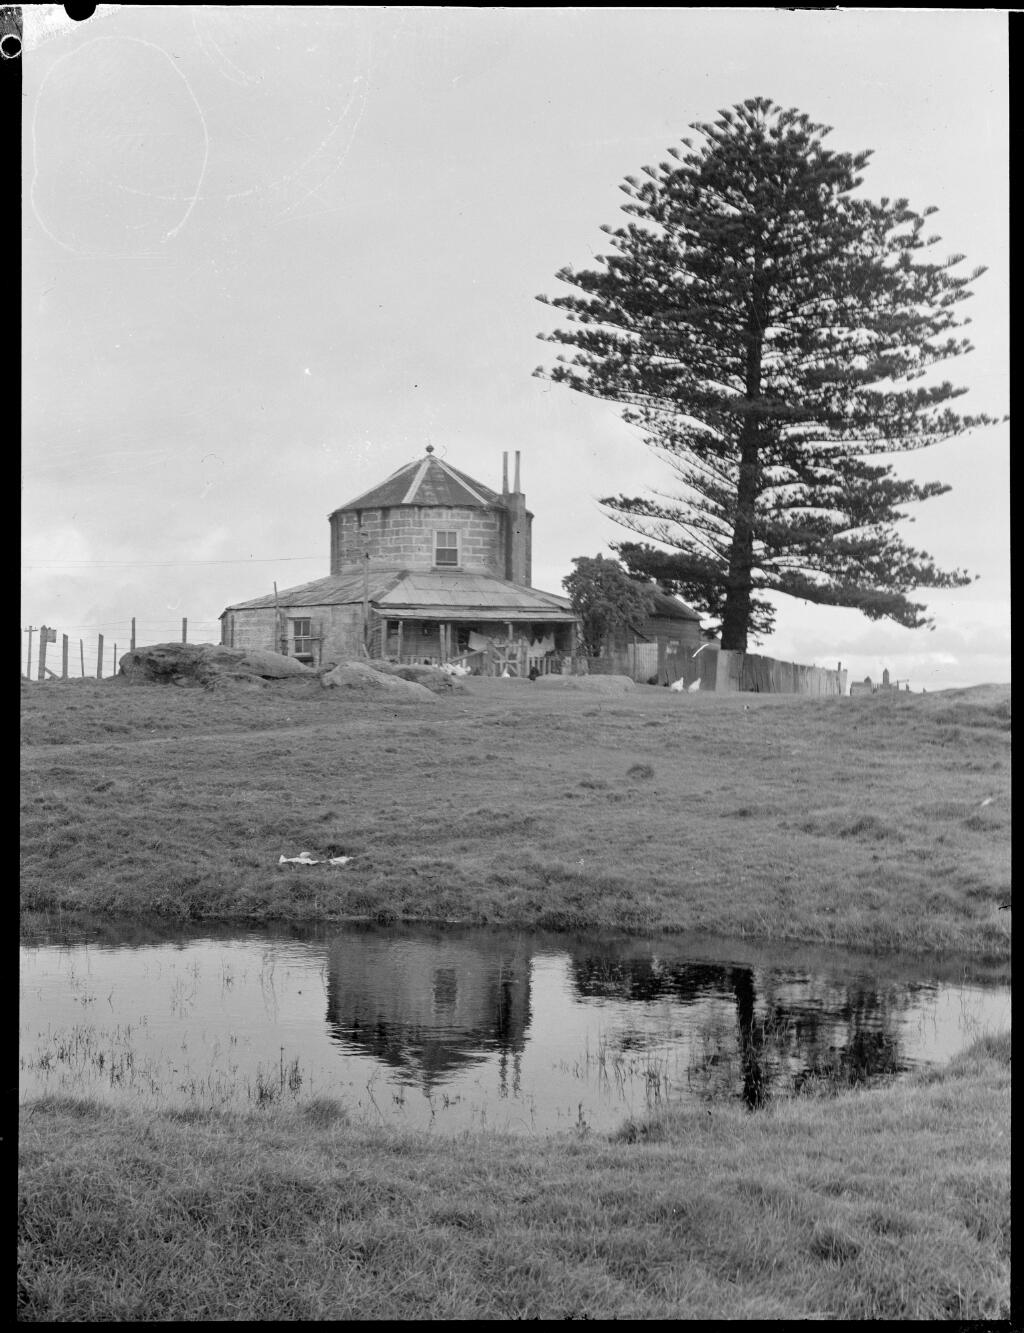 Old Customs House, La Perouse, Botany Bay, New South Wales, ca. 1935, 1 / E.W. Searle